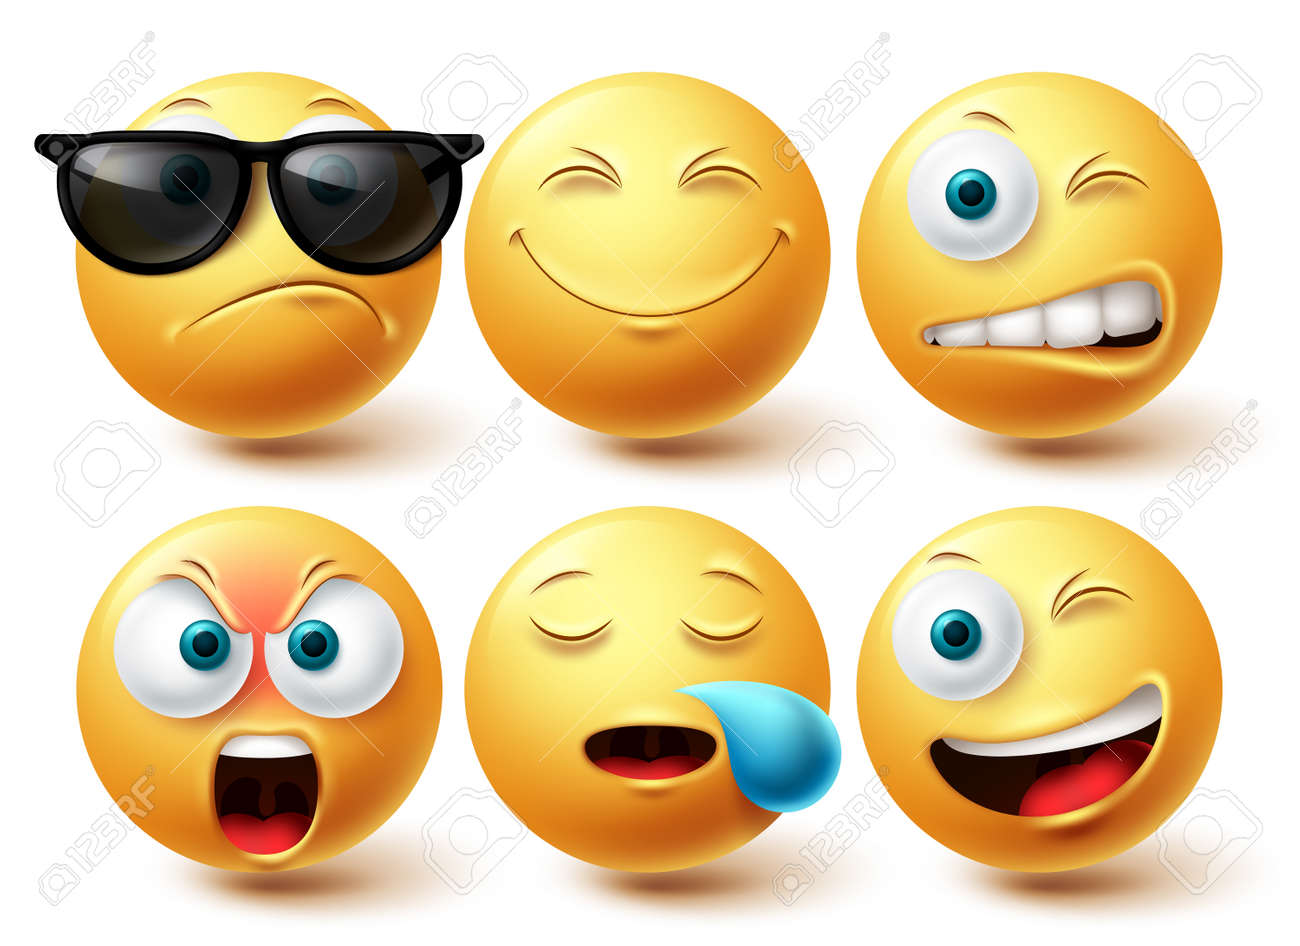 Smiley cool emoji vector set. Smileys emoticon yellow icon collection isolated in white background for graphic elements design. Vector illustration - 171747806